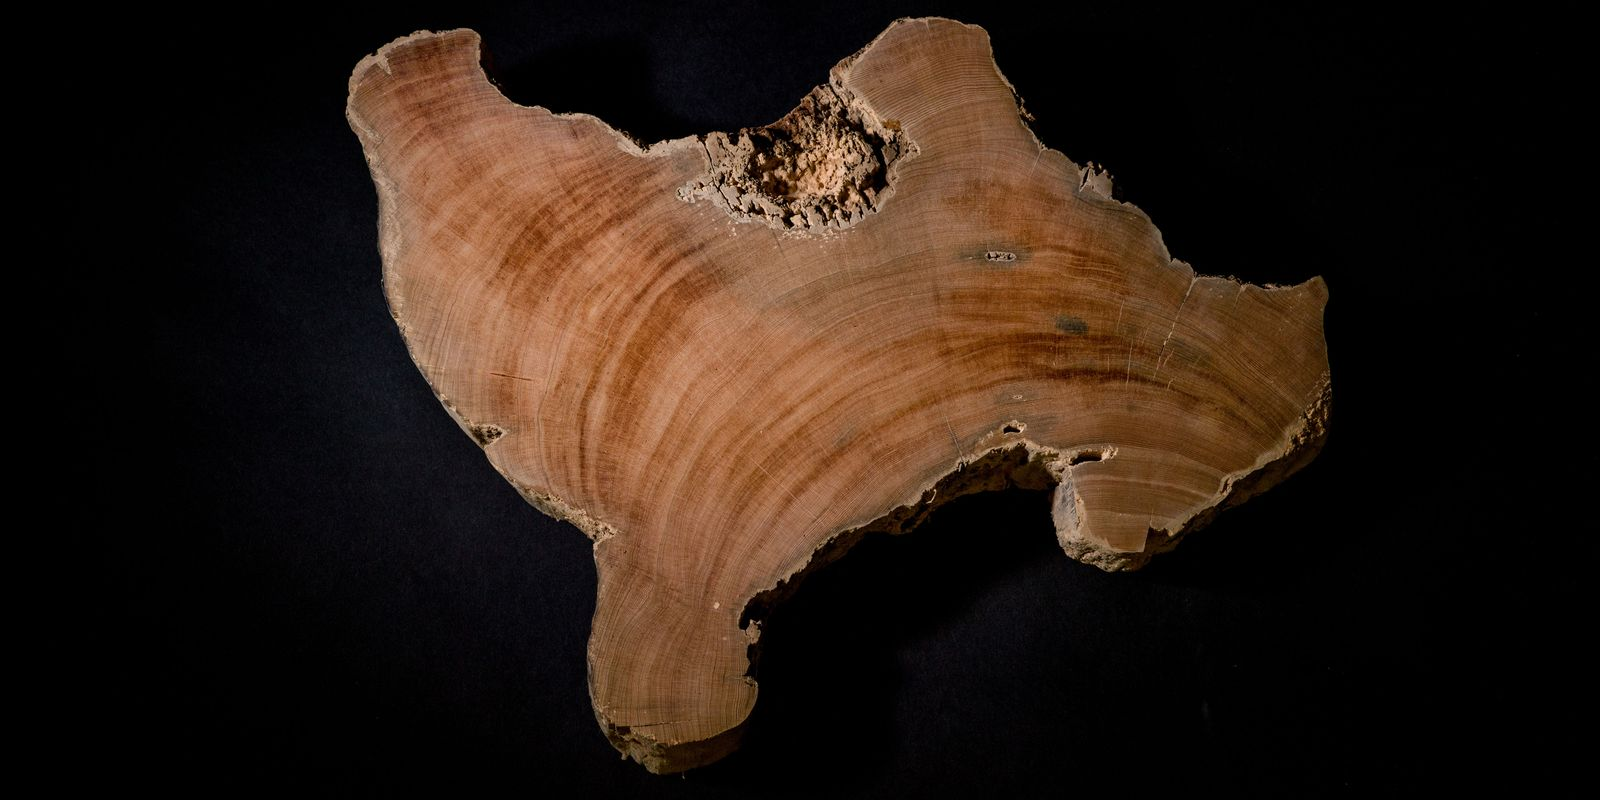 These tree samples came from more than 10,000 miles across the Pacific Ocean, in Tasmania, Australia